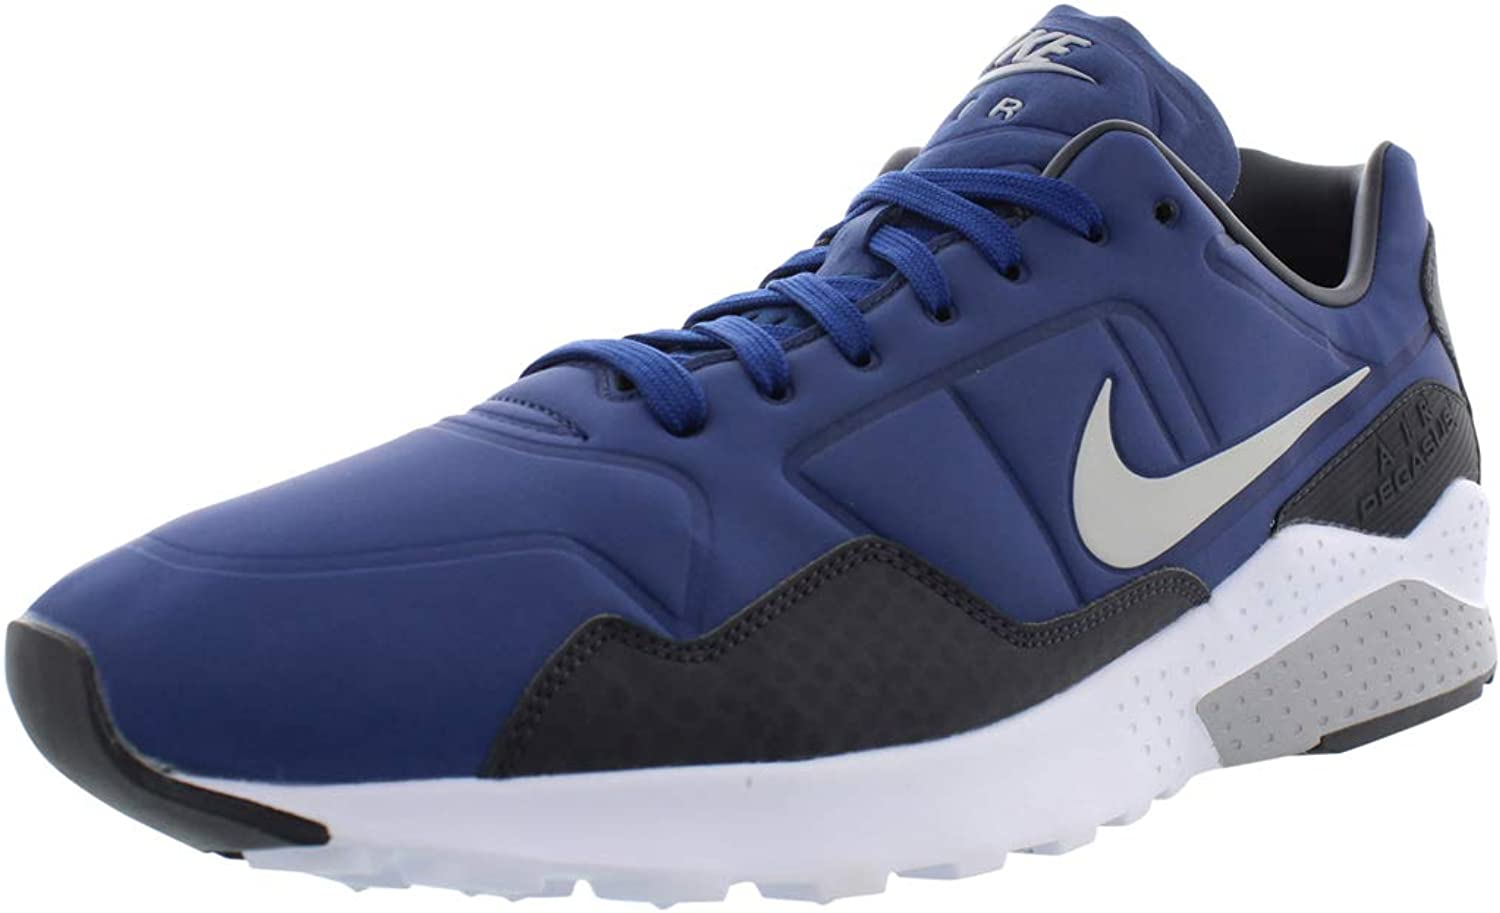 Nike Men's's 844654-400 Fitness shoes